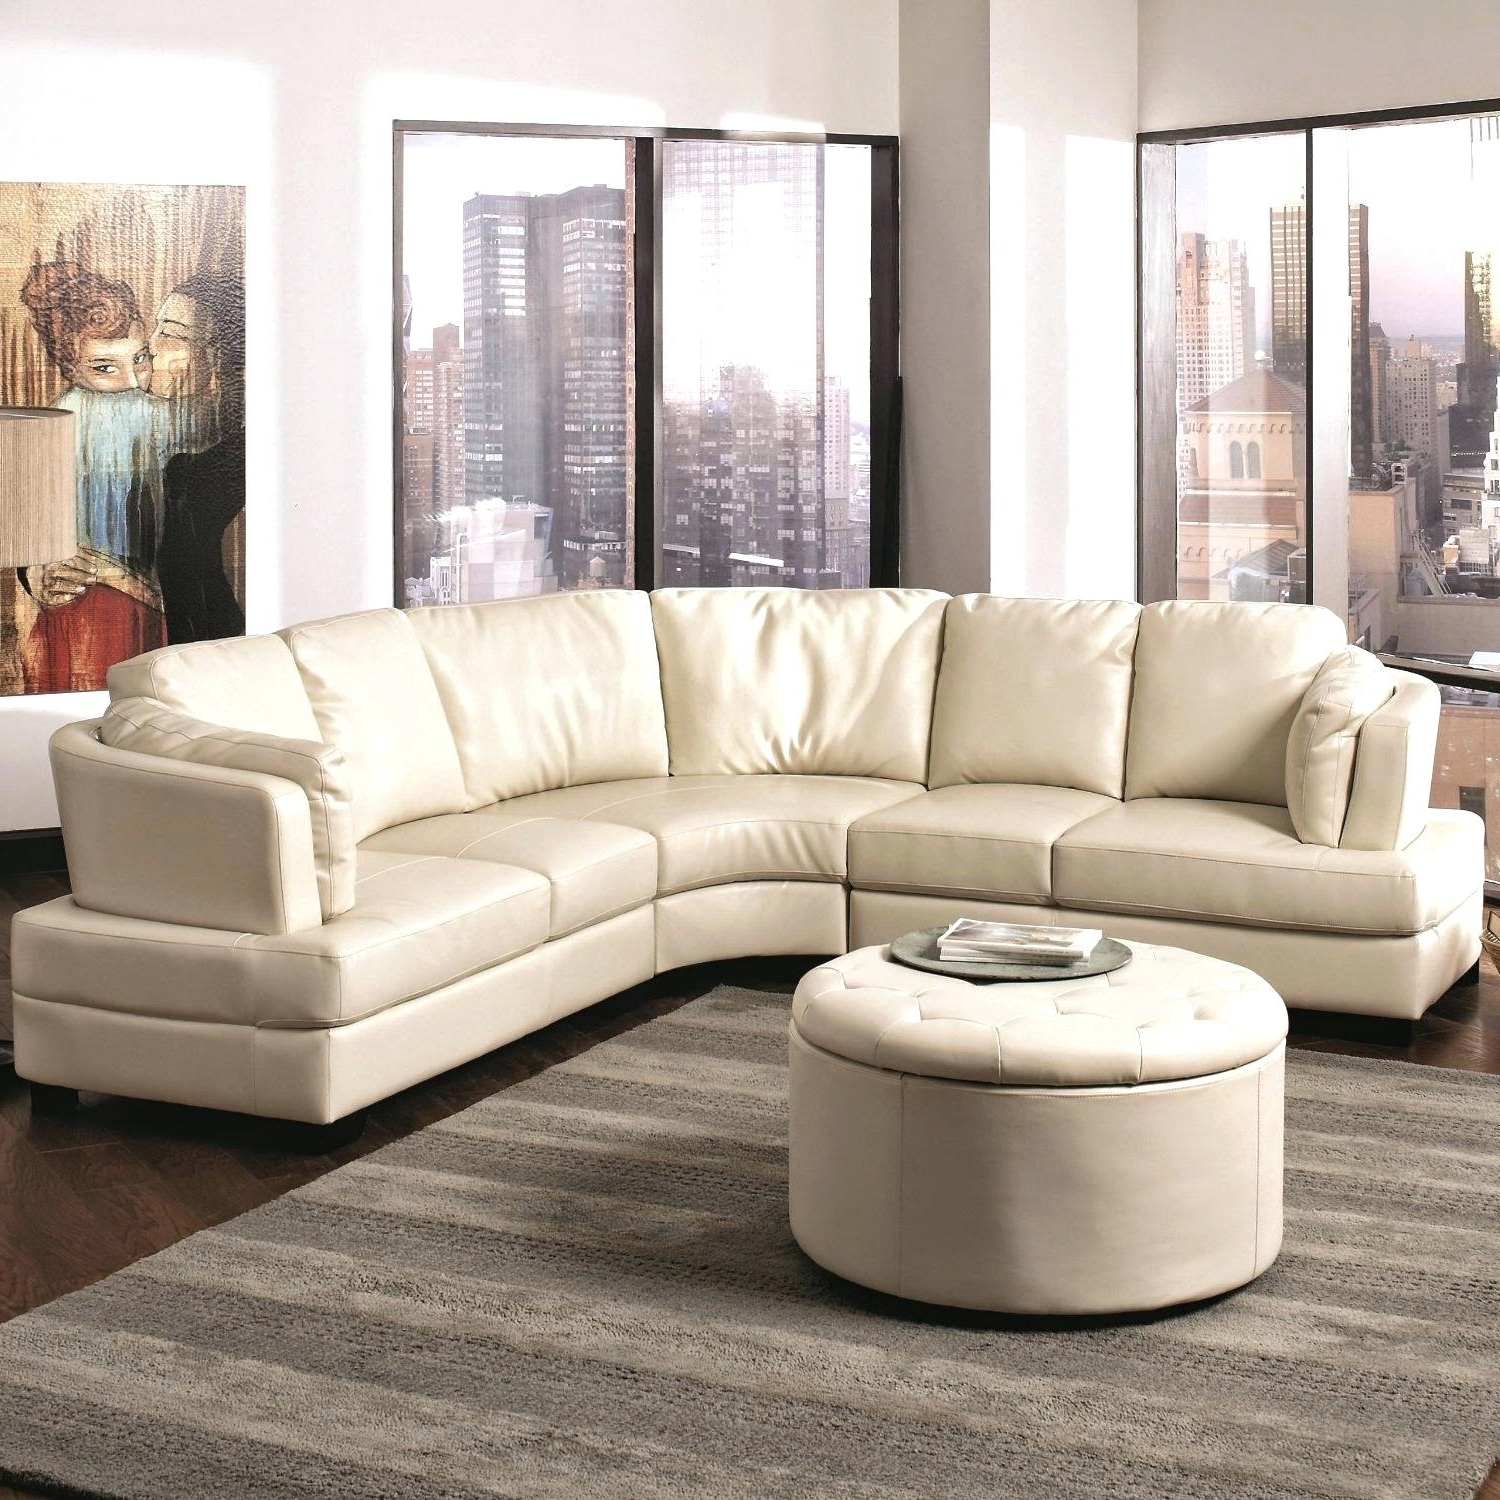 Ontario Sectional Sofas In Best And Newest Sectional Sofa Sale Sa Couches For Near Me Liquidation Toronto (View 7 of 20)